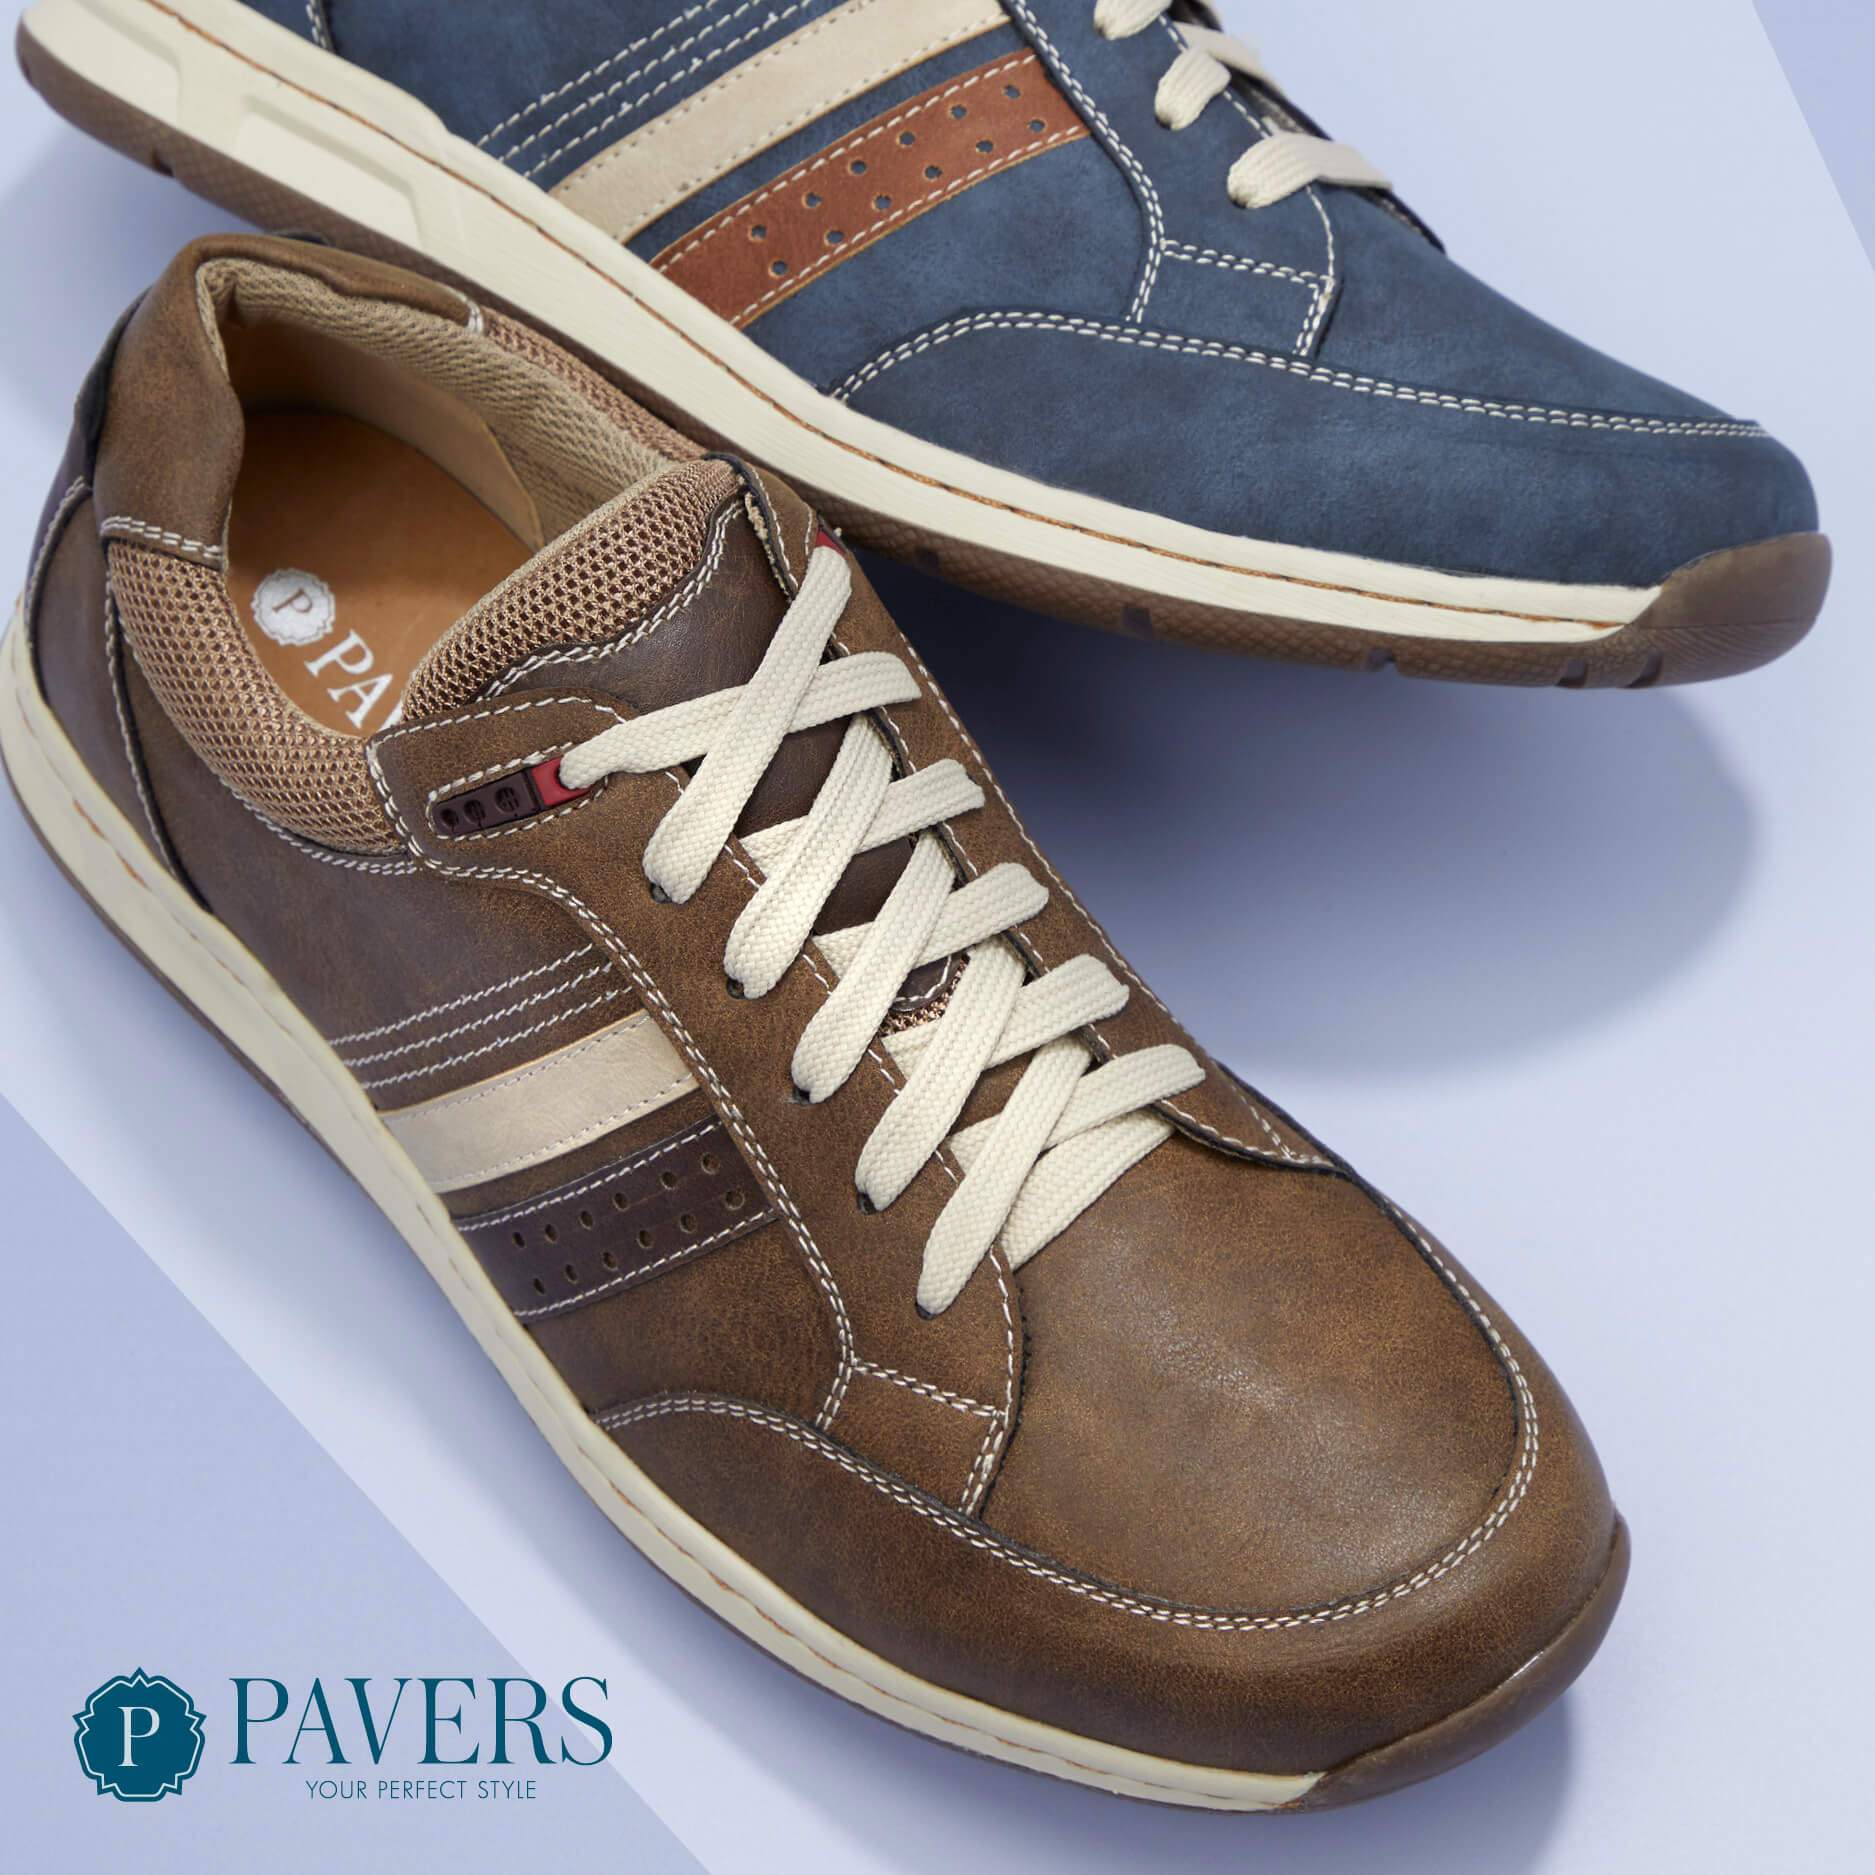 Pavers Outlet